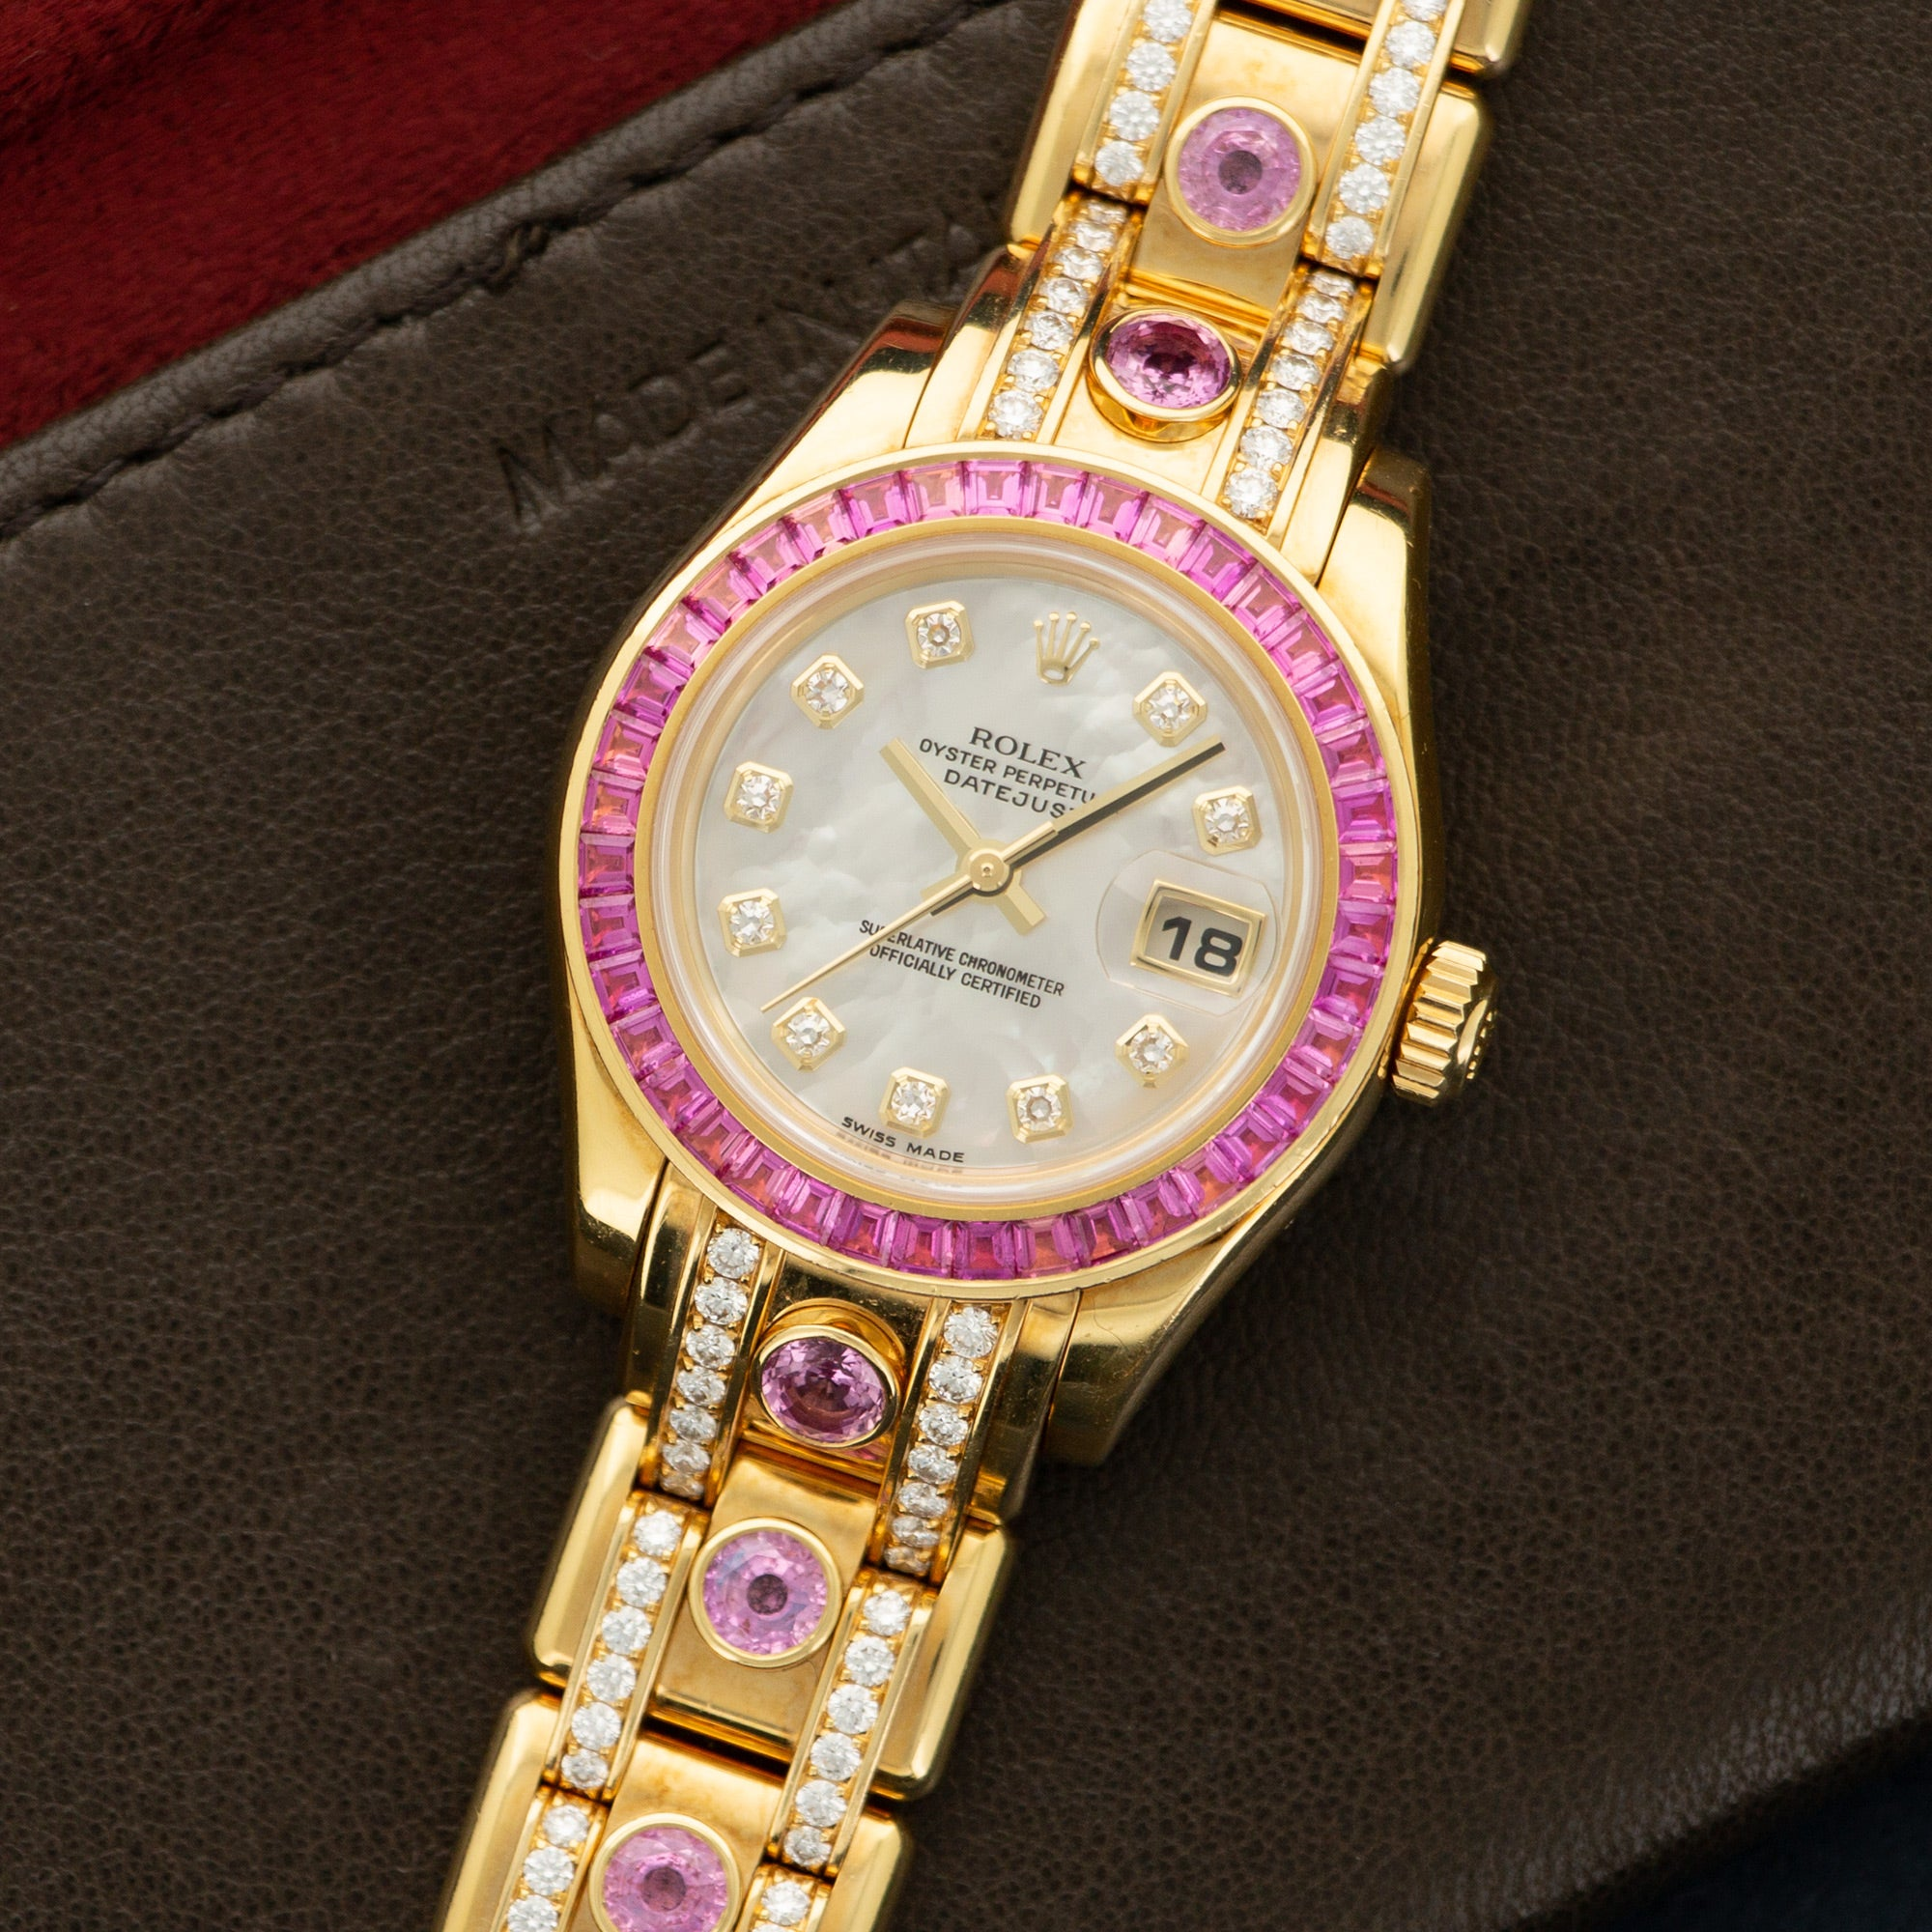 Rolex Datejust 80308 18k YG  Excellent Ladies 18k YG Mother of Pearl with Diamonds 29mm Automatic 2000s Yellow Gold with Diamonds and Pink Sapphires (6.5) Original Box